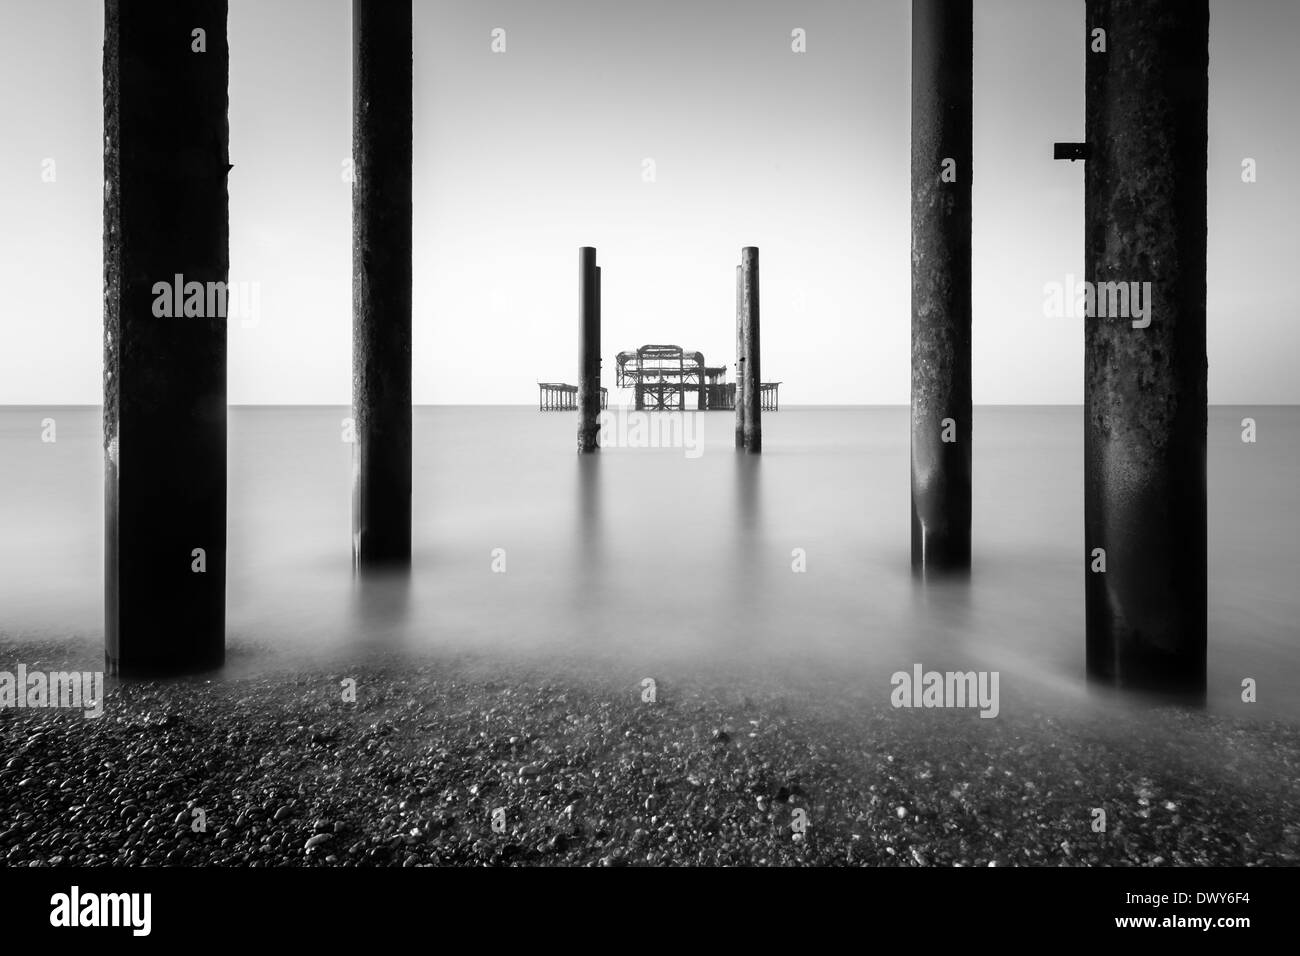 Old Pavillion or Pier, Brighton Beach - Stock Image